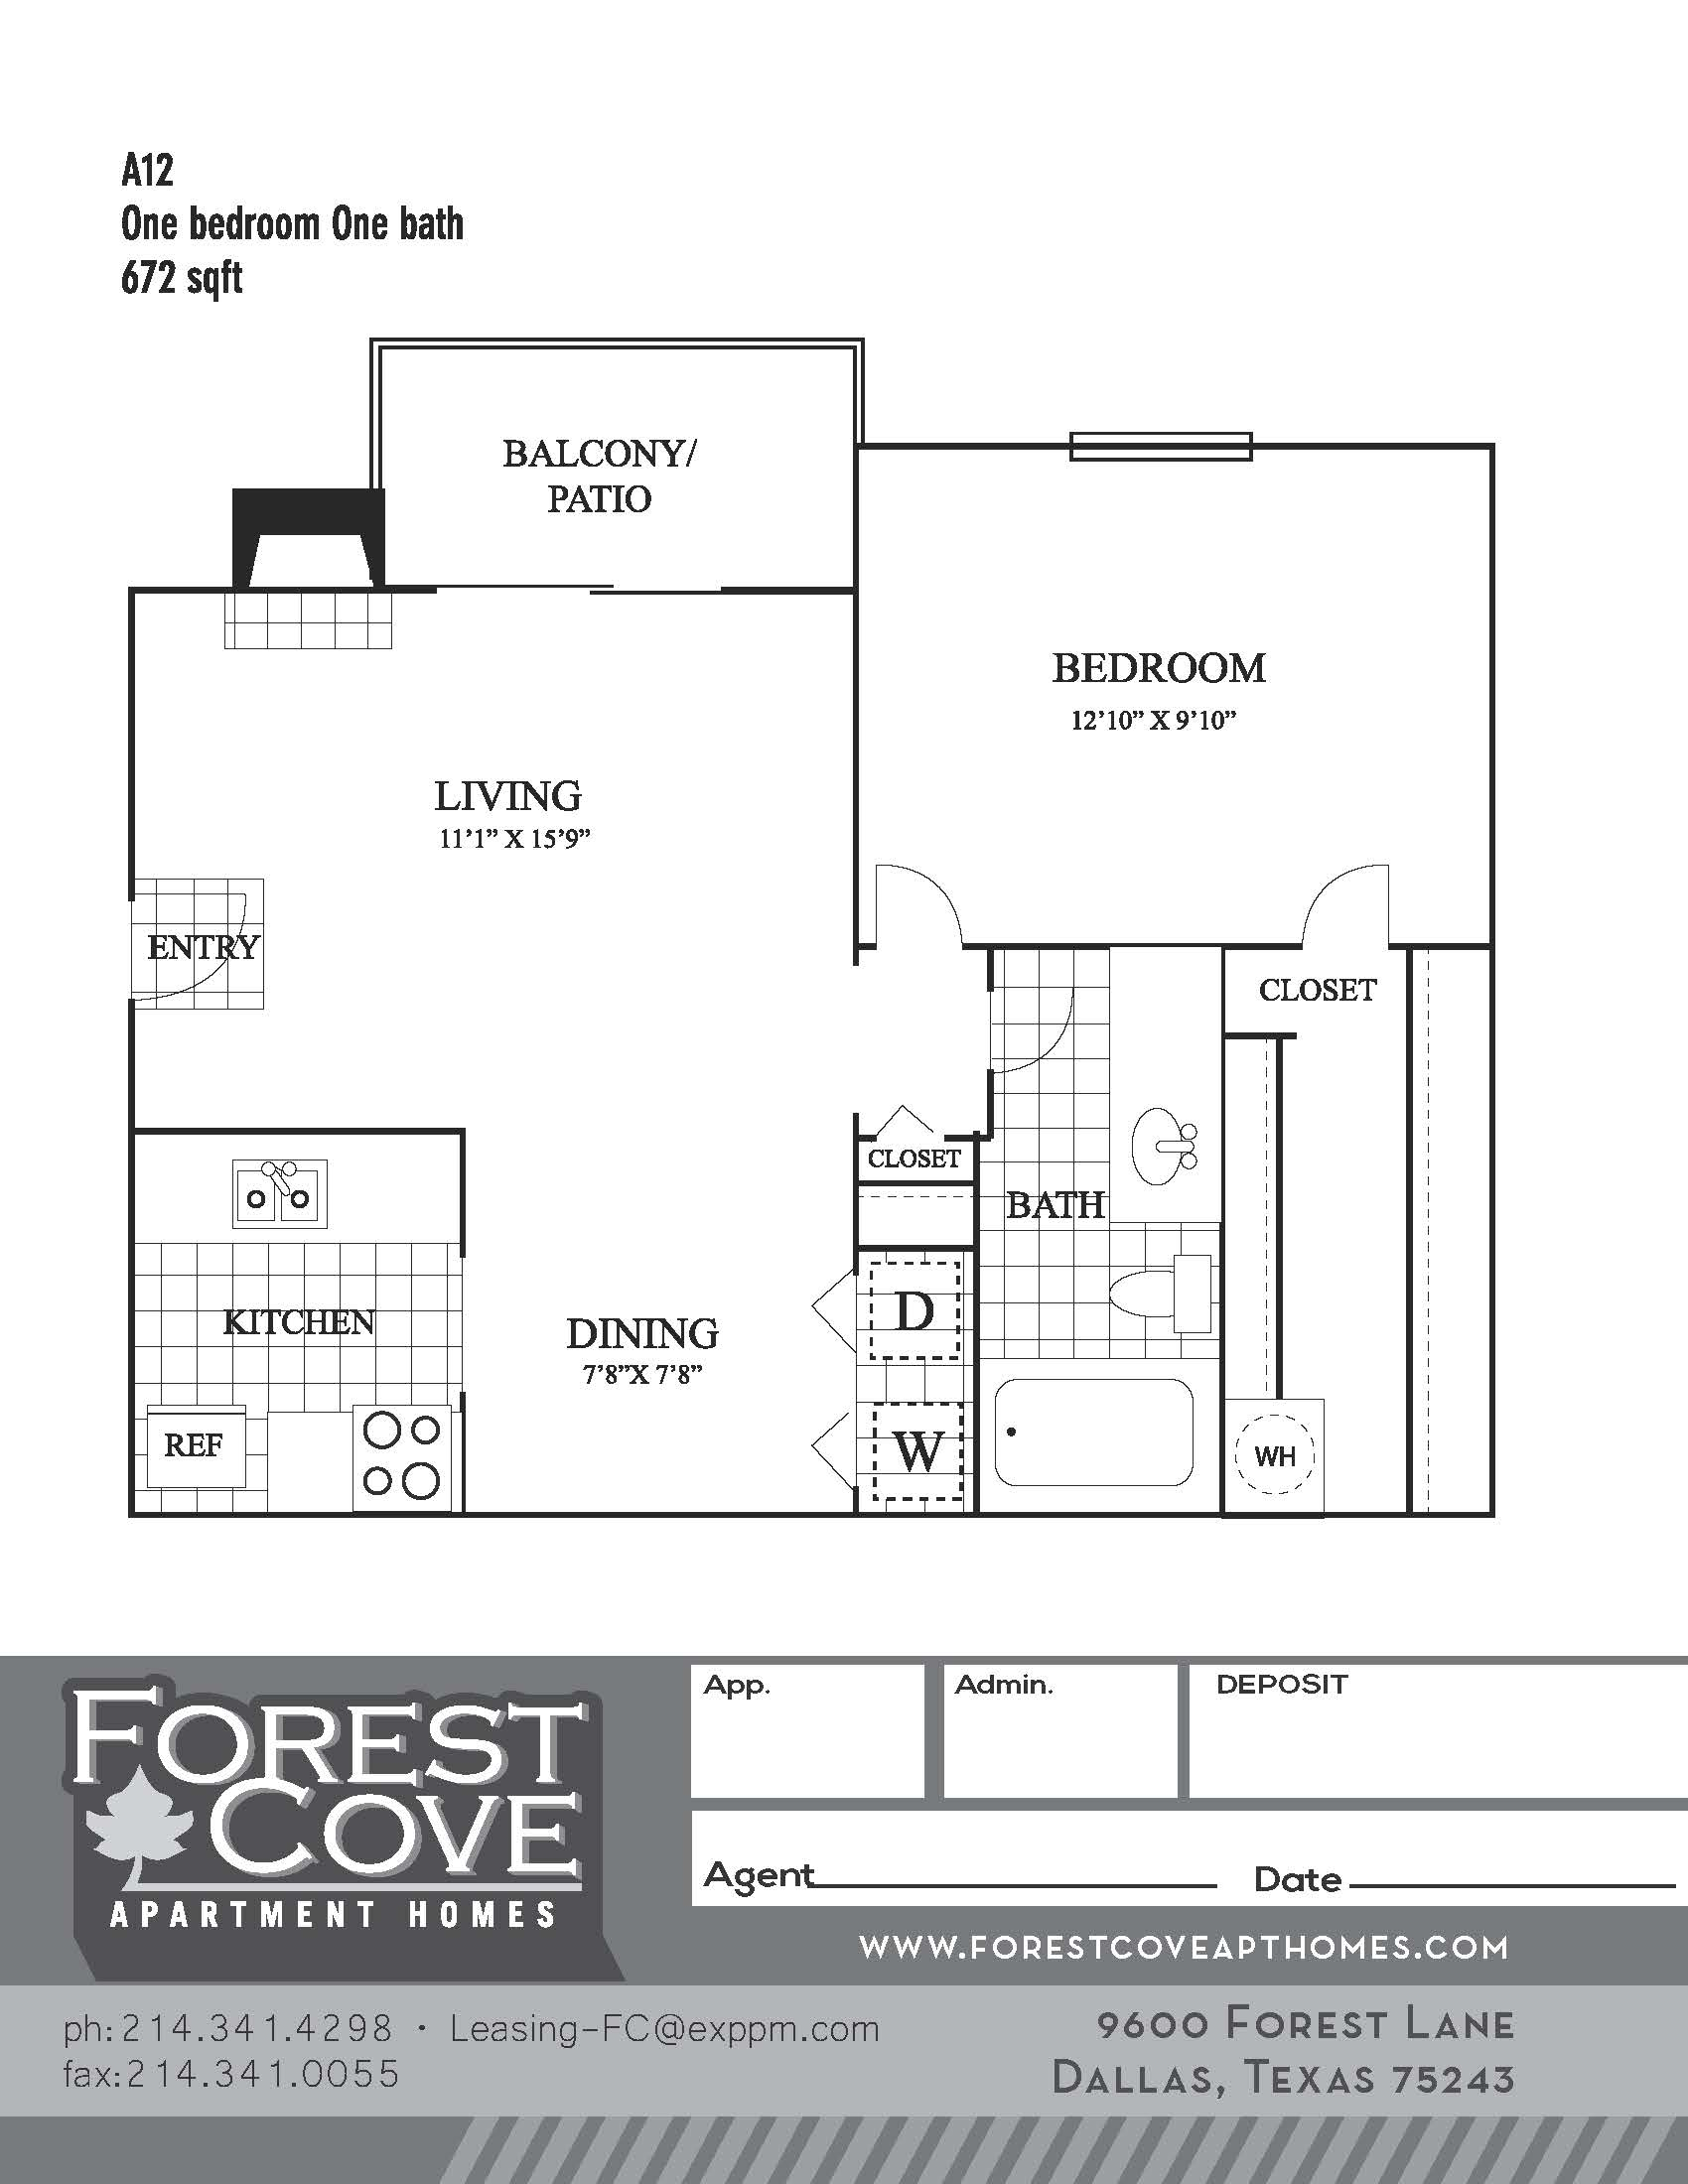 Forest Cove Apartments - Floorplan - A12